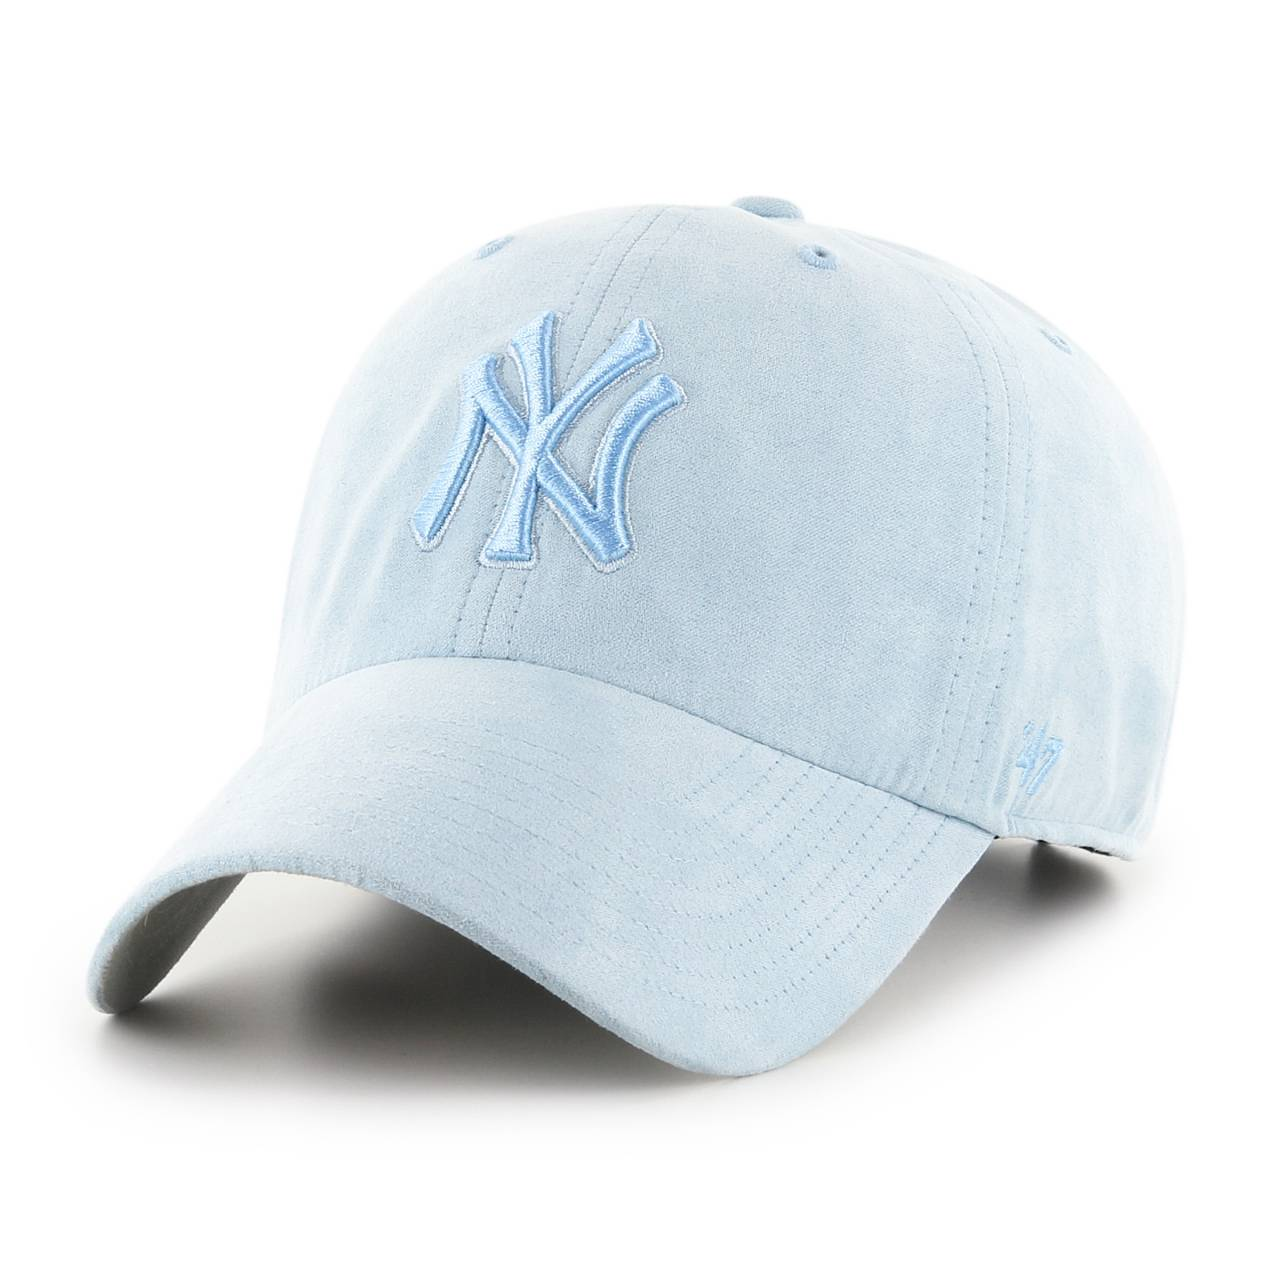 B-ULTBS17USS-CO CLEAN UP MLB NEW YORK YANKEES SUEDE BLUE CAP